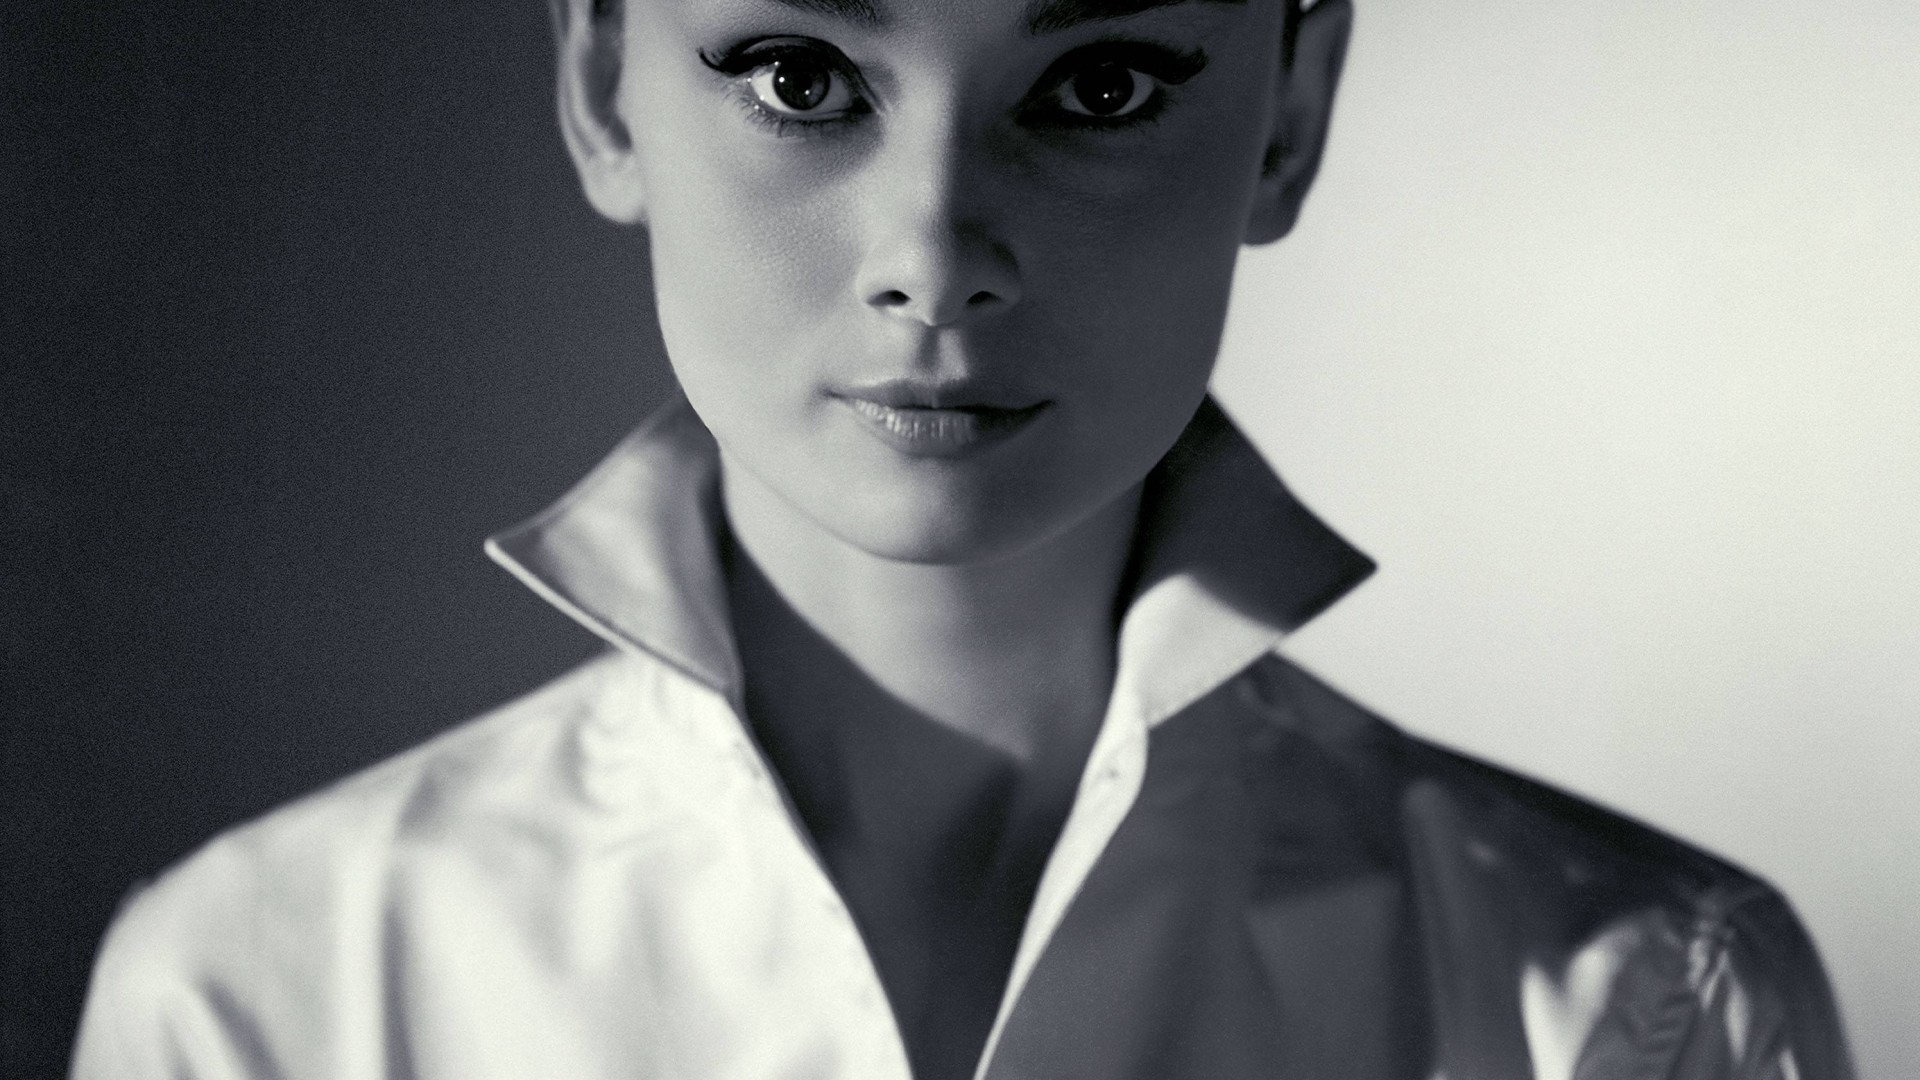 Download Audrey Hepburn Backgrounds 1920x1080